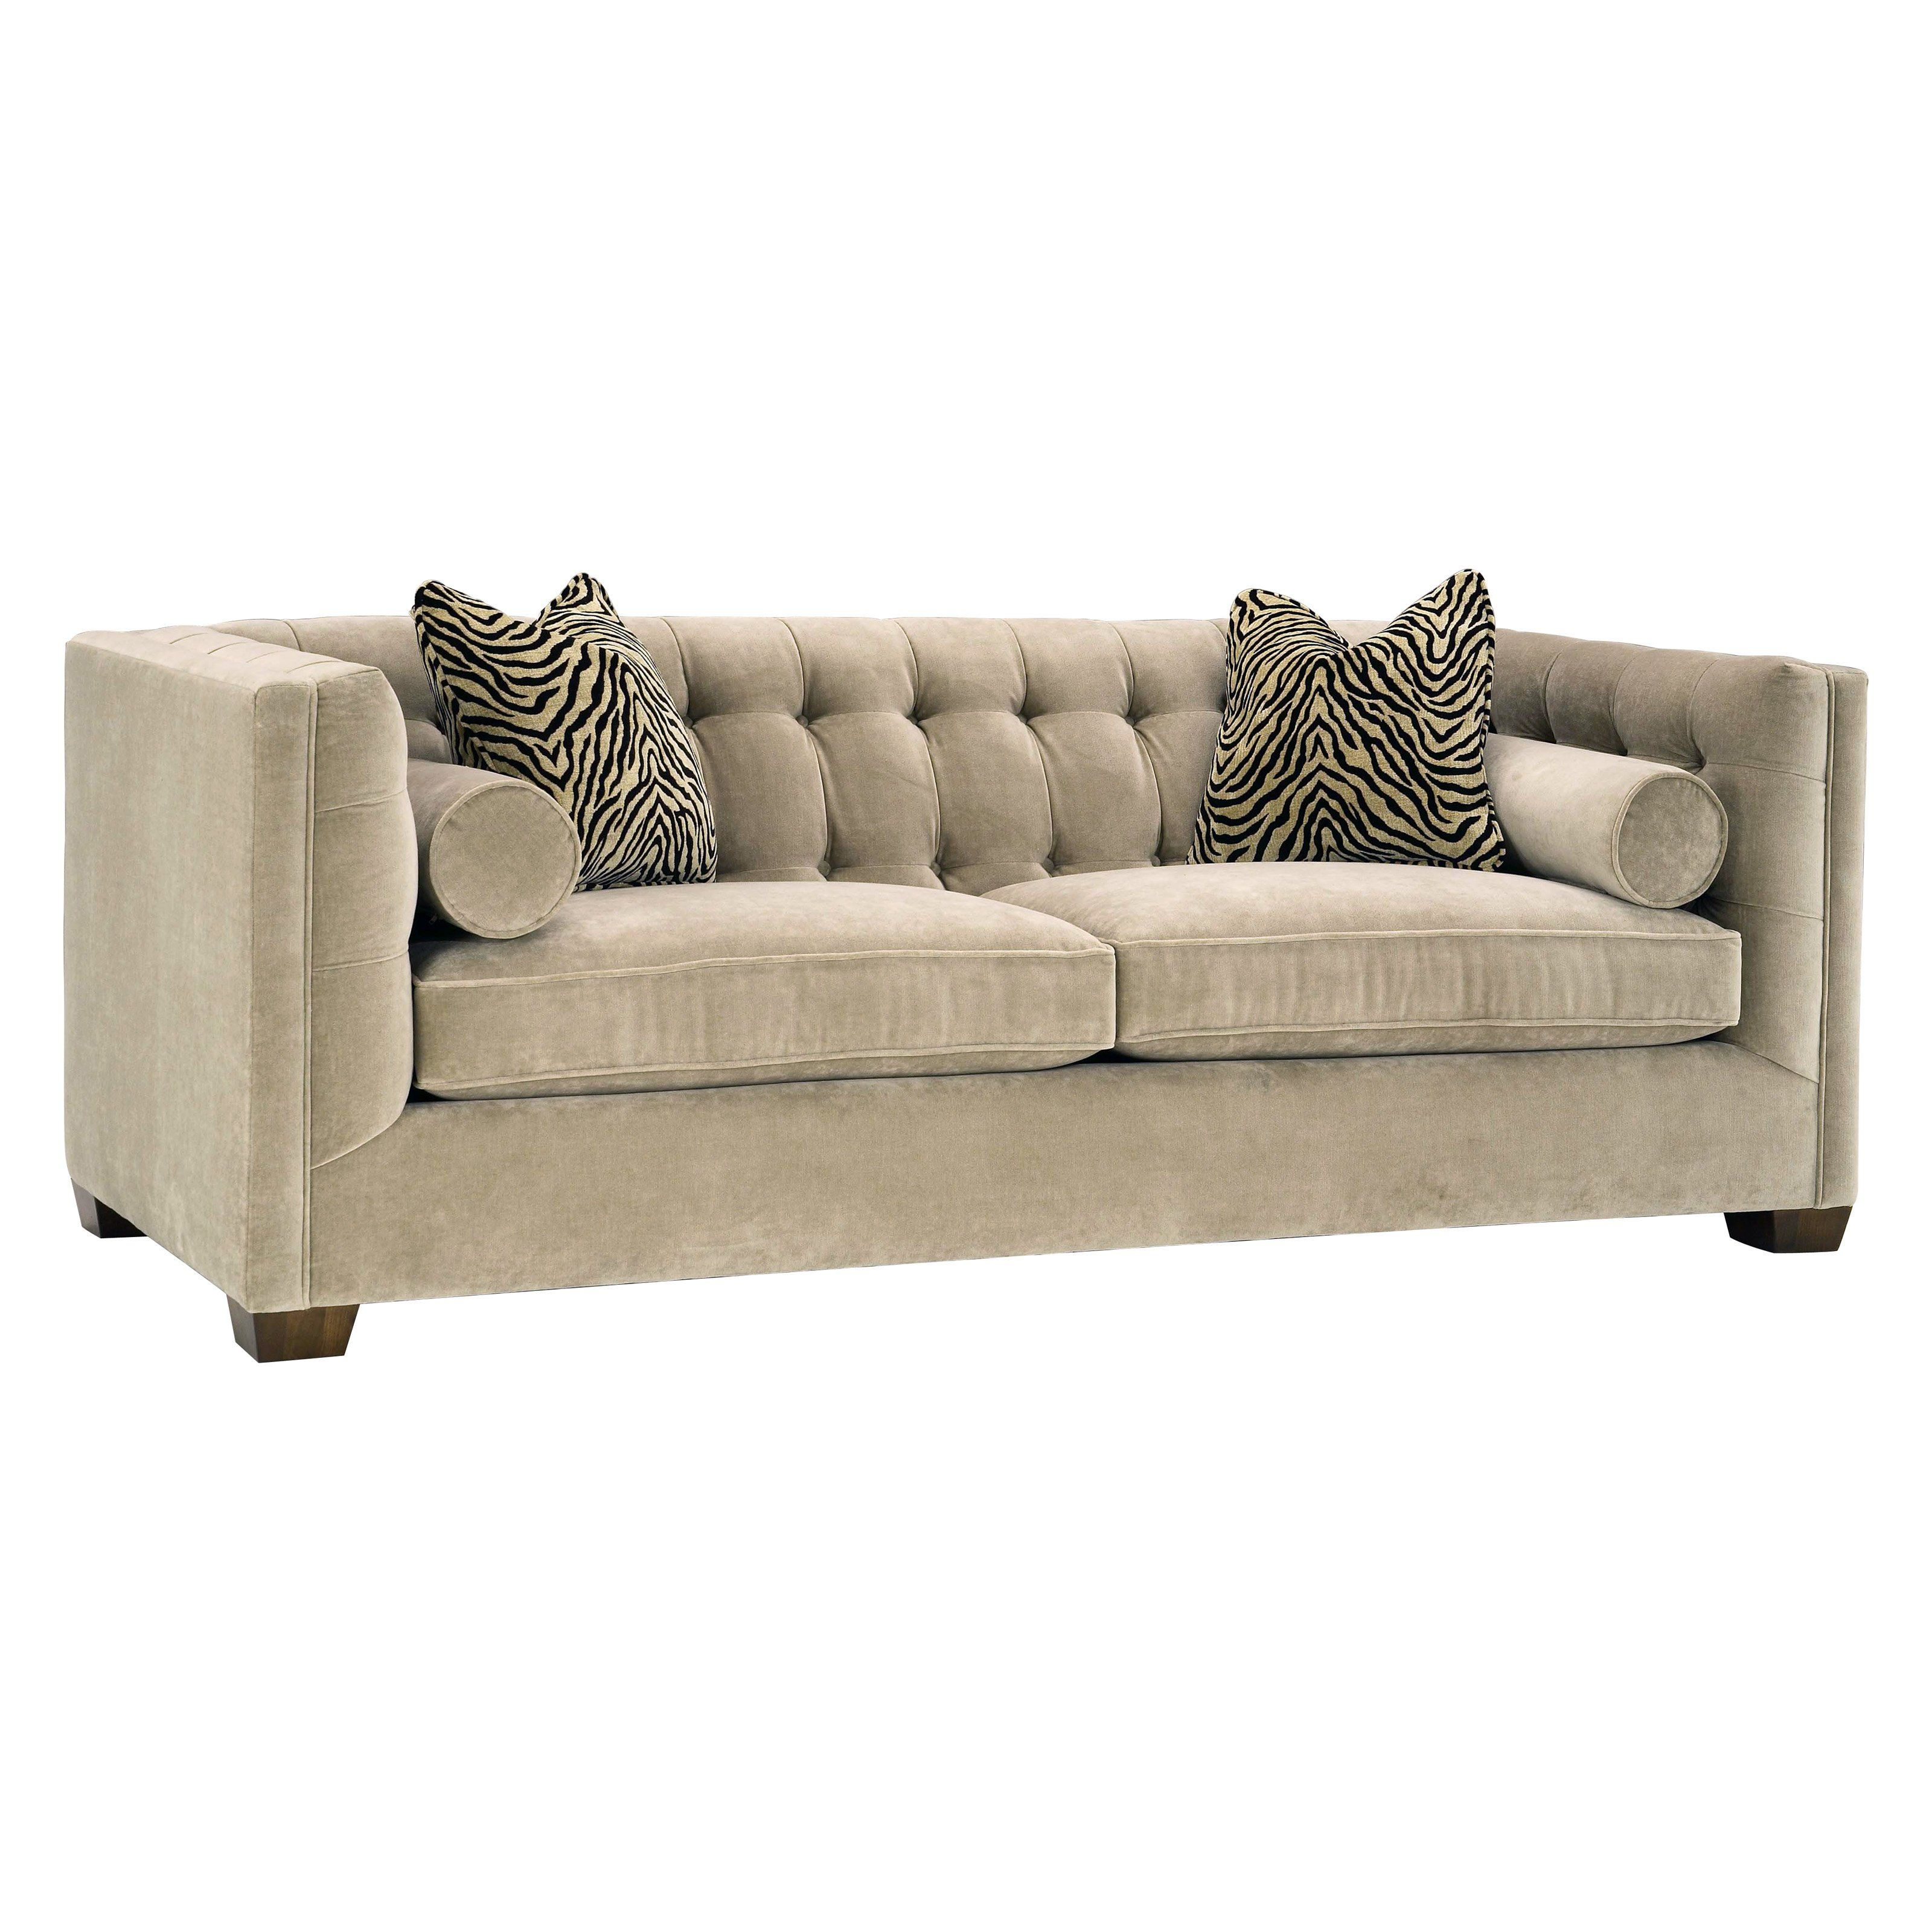 Have To Have It Lazar Tommy Bellisimo Cafe Fabric Loveseat With Pillows 2138 99 Sofa Contemporary Sofa Queen Size Sofa Bed